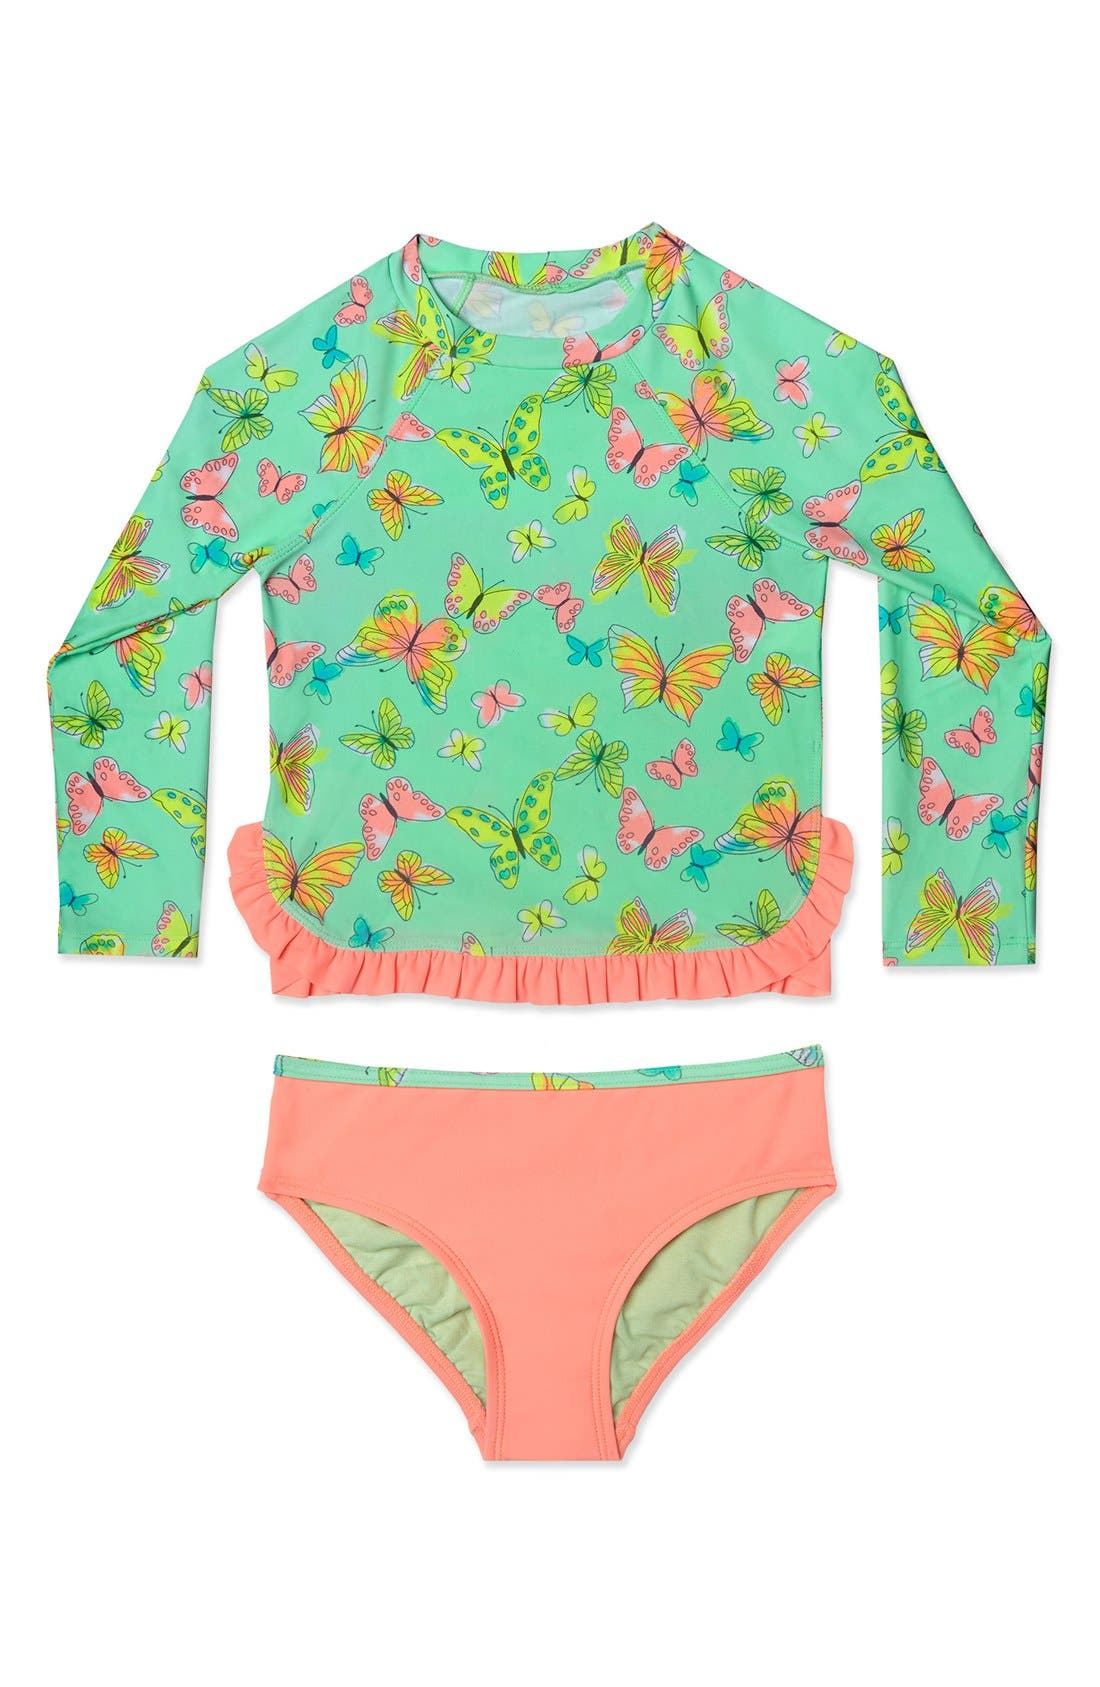 'Butterfly' Two-Piece Rashguard Swimsuit,                             Main thumbnail 1, color,                             332